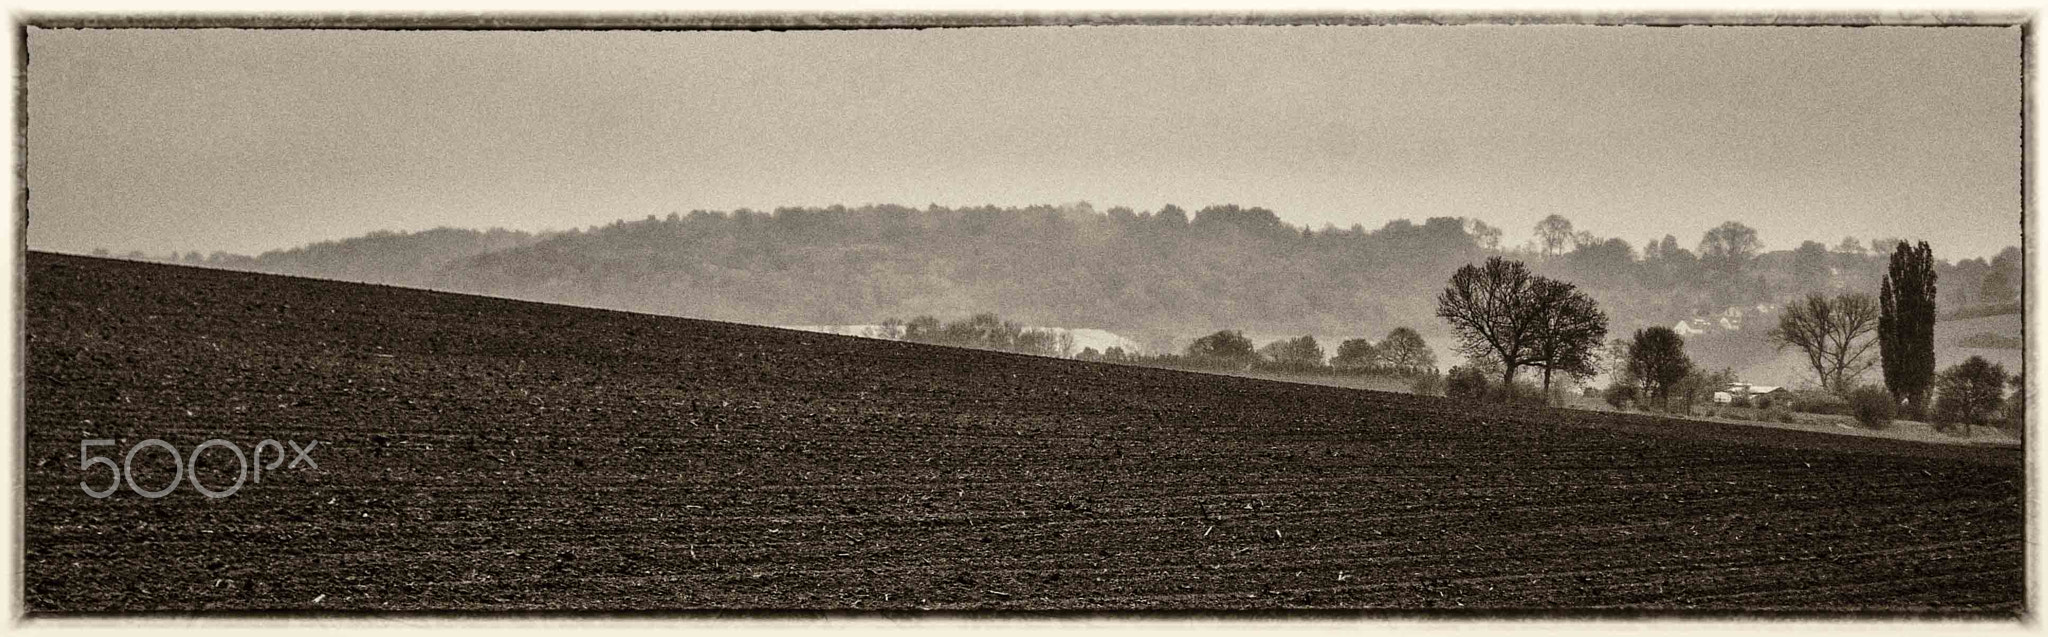 Photograph Landscape by Bart Ebisch on 500px